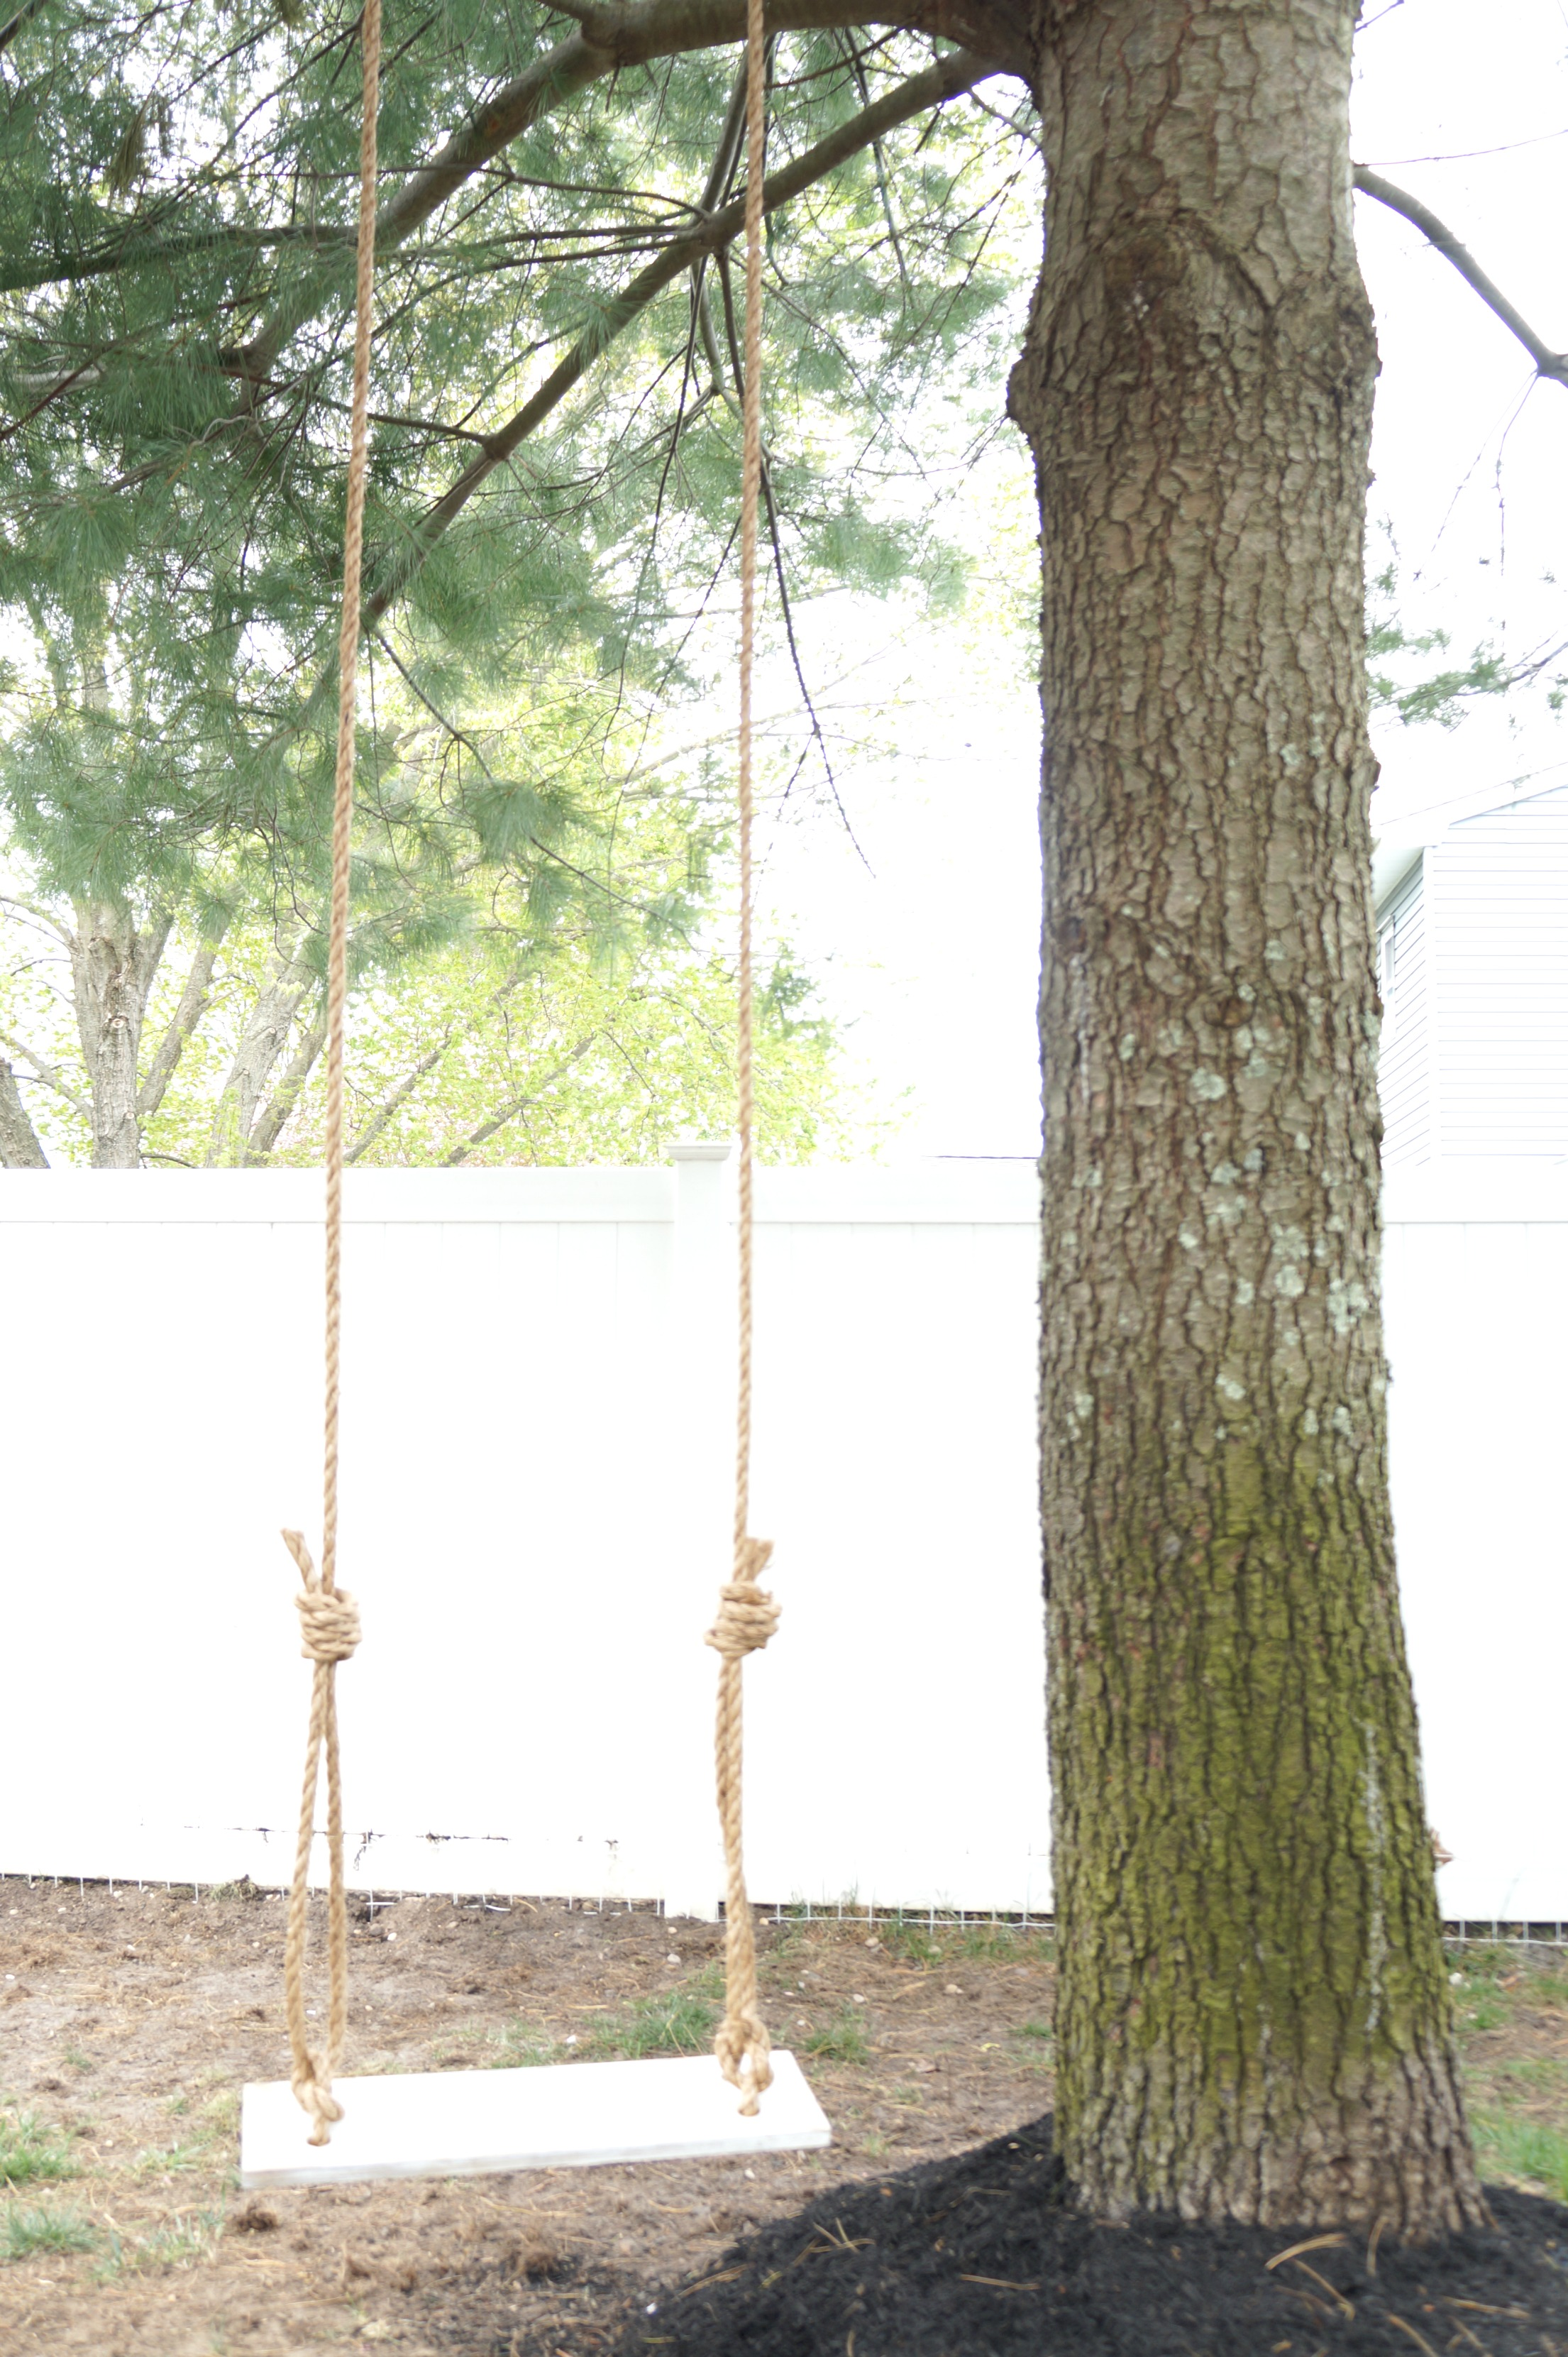 How to build a tree swing - Now A Swing Is No Fun Unless You Got A Cute Little One Asking For Some Pushes